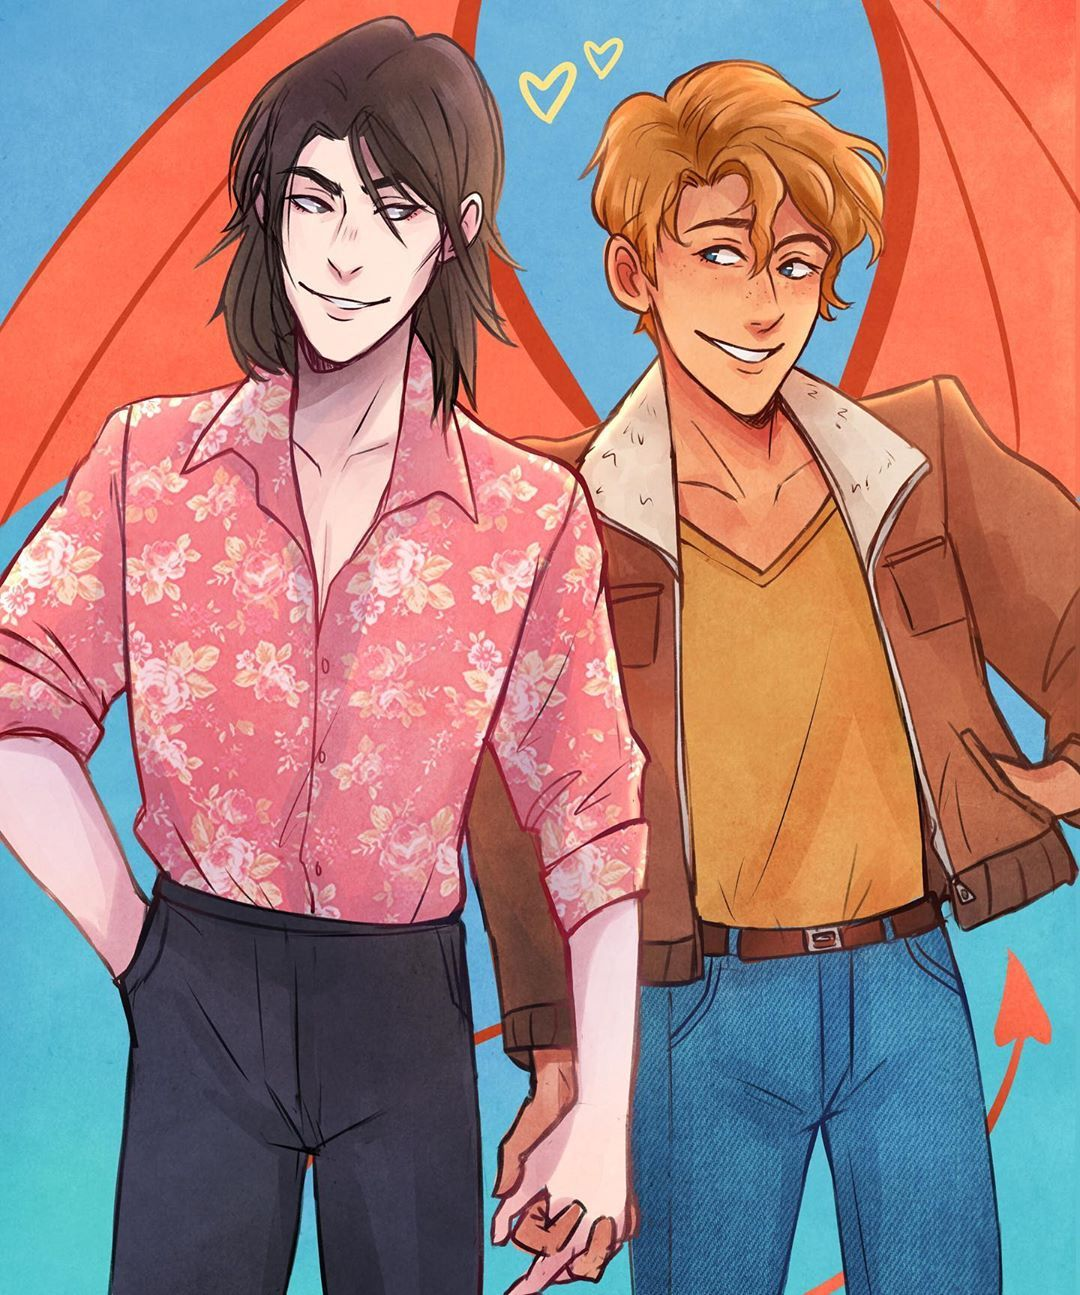 Simon e Baz fan art Rainbow rowell